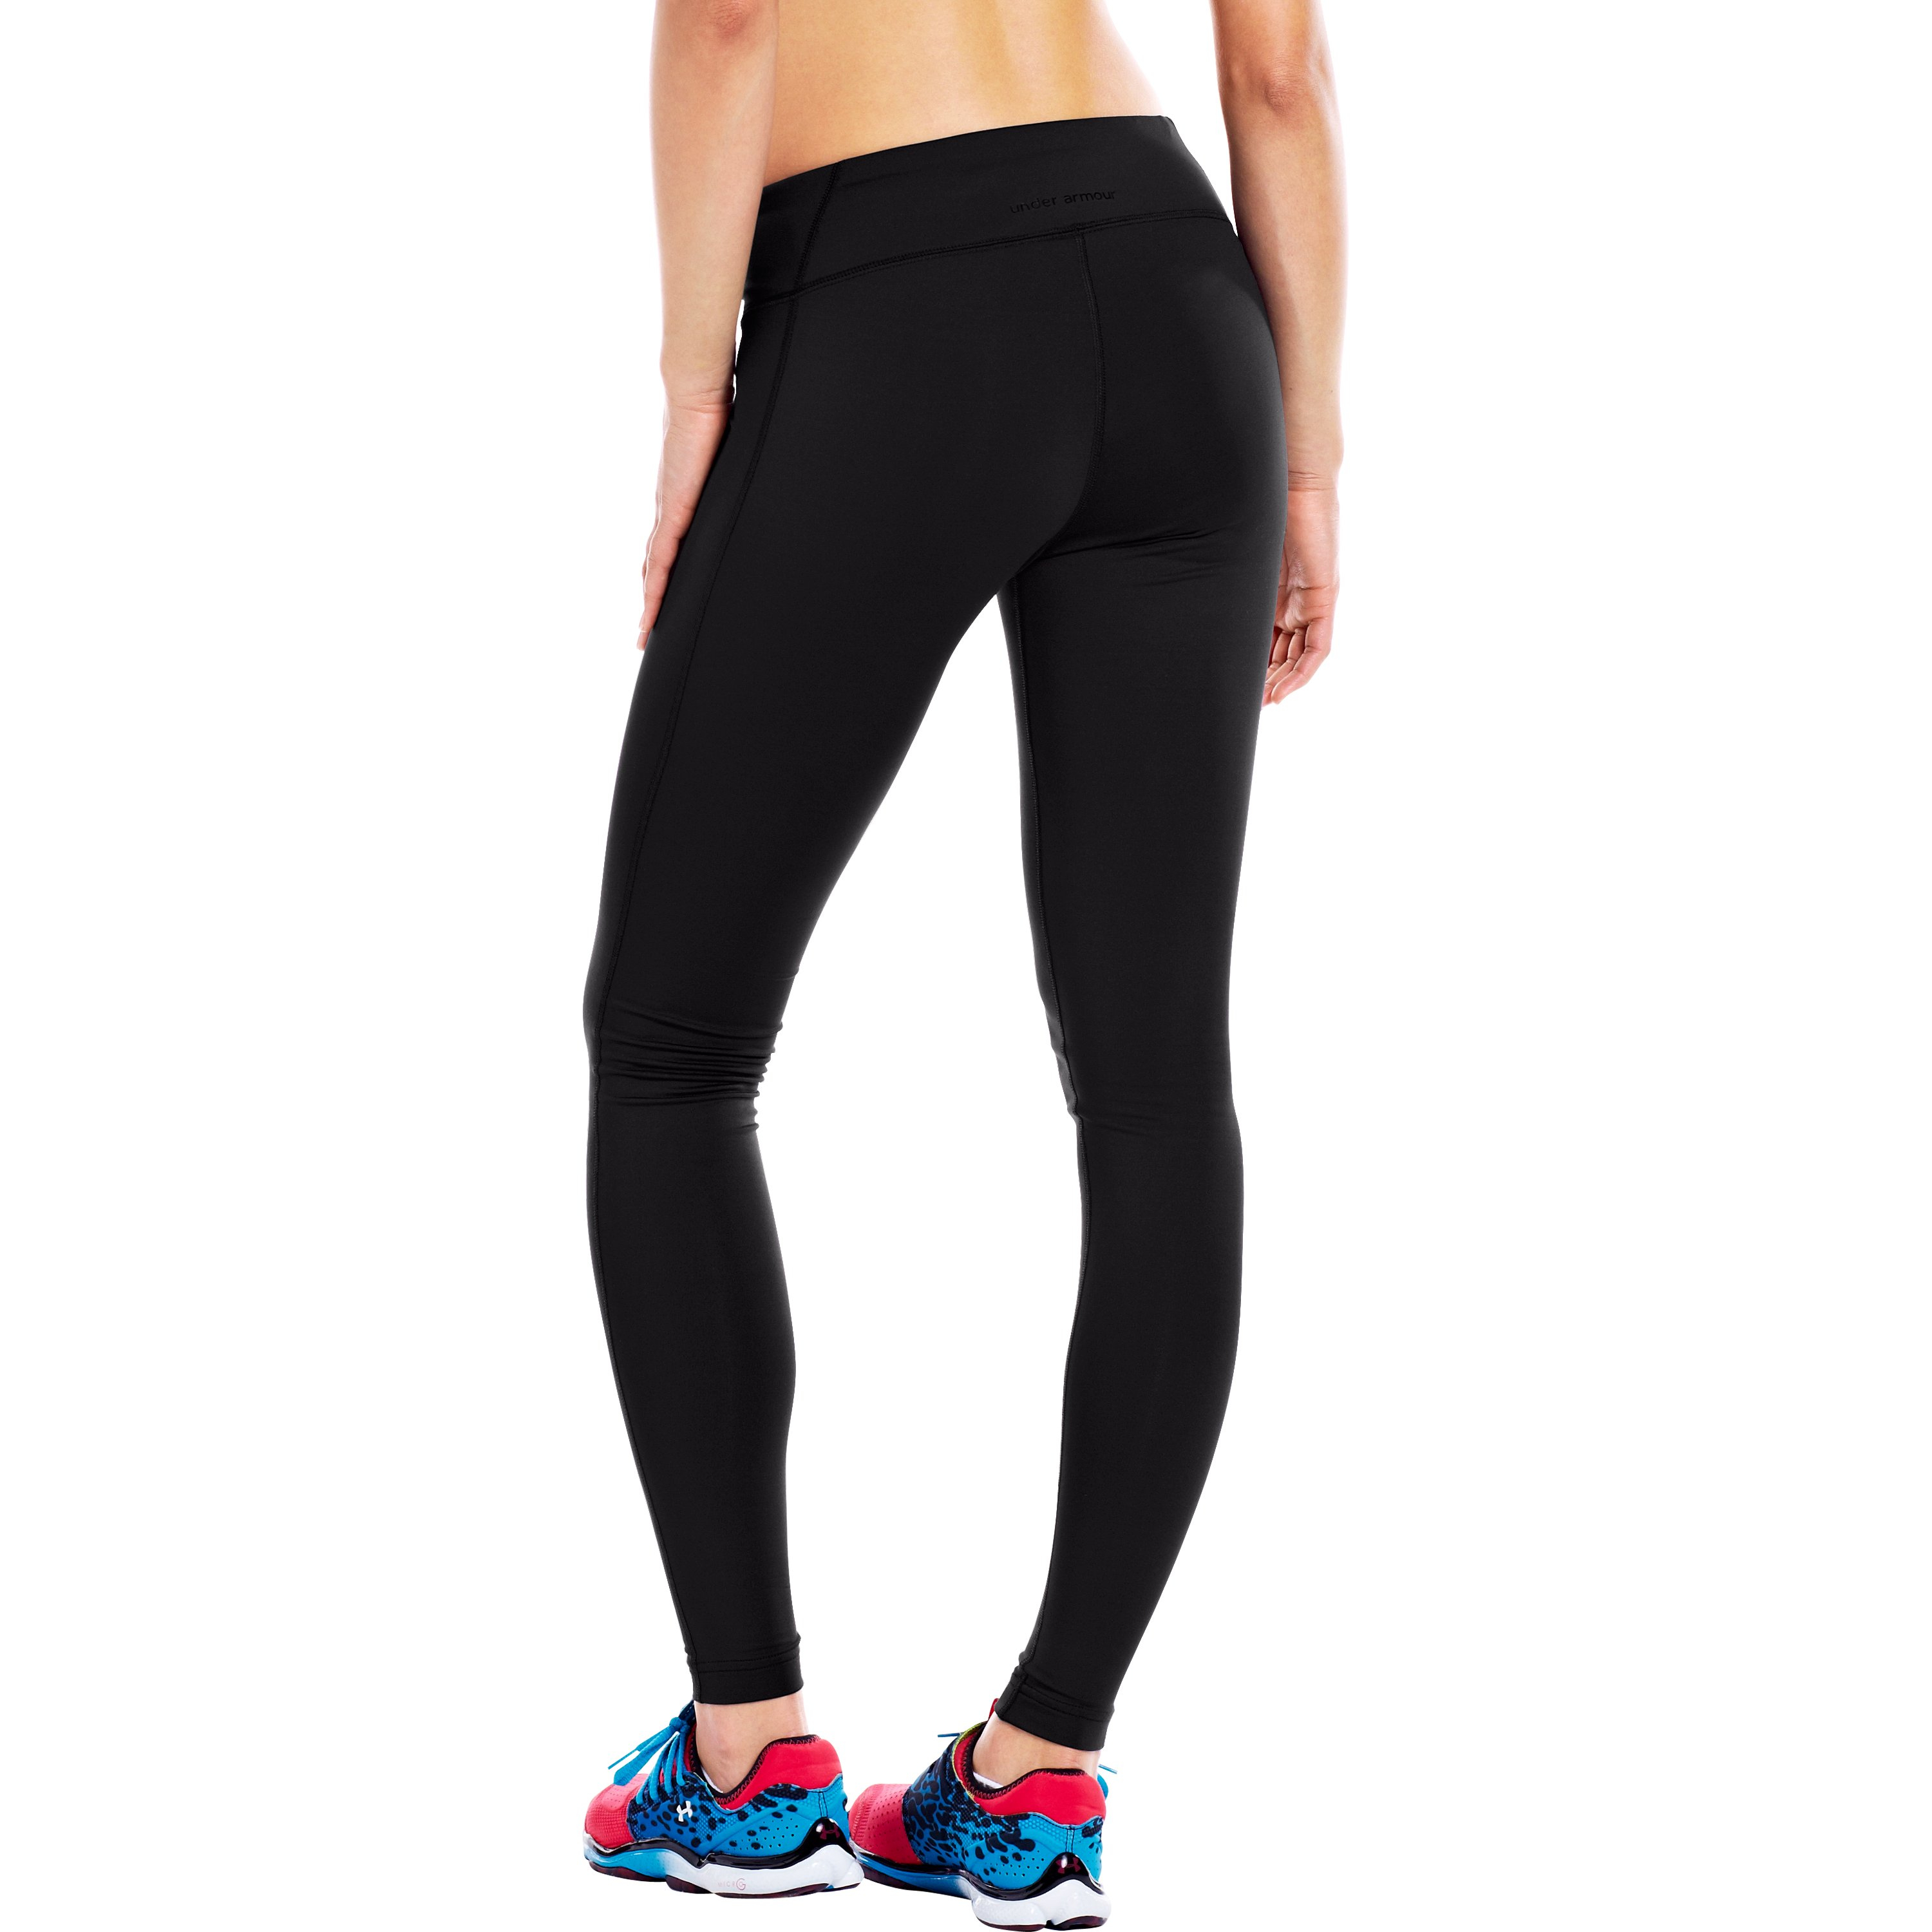 611574bae42cb0 Lyst - Under Armour Women's Ua Authentic Coldgear® Fitted Tight in Black